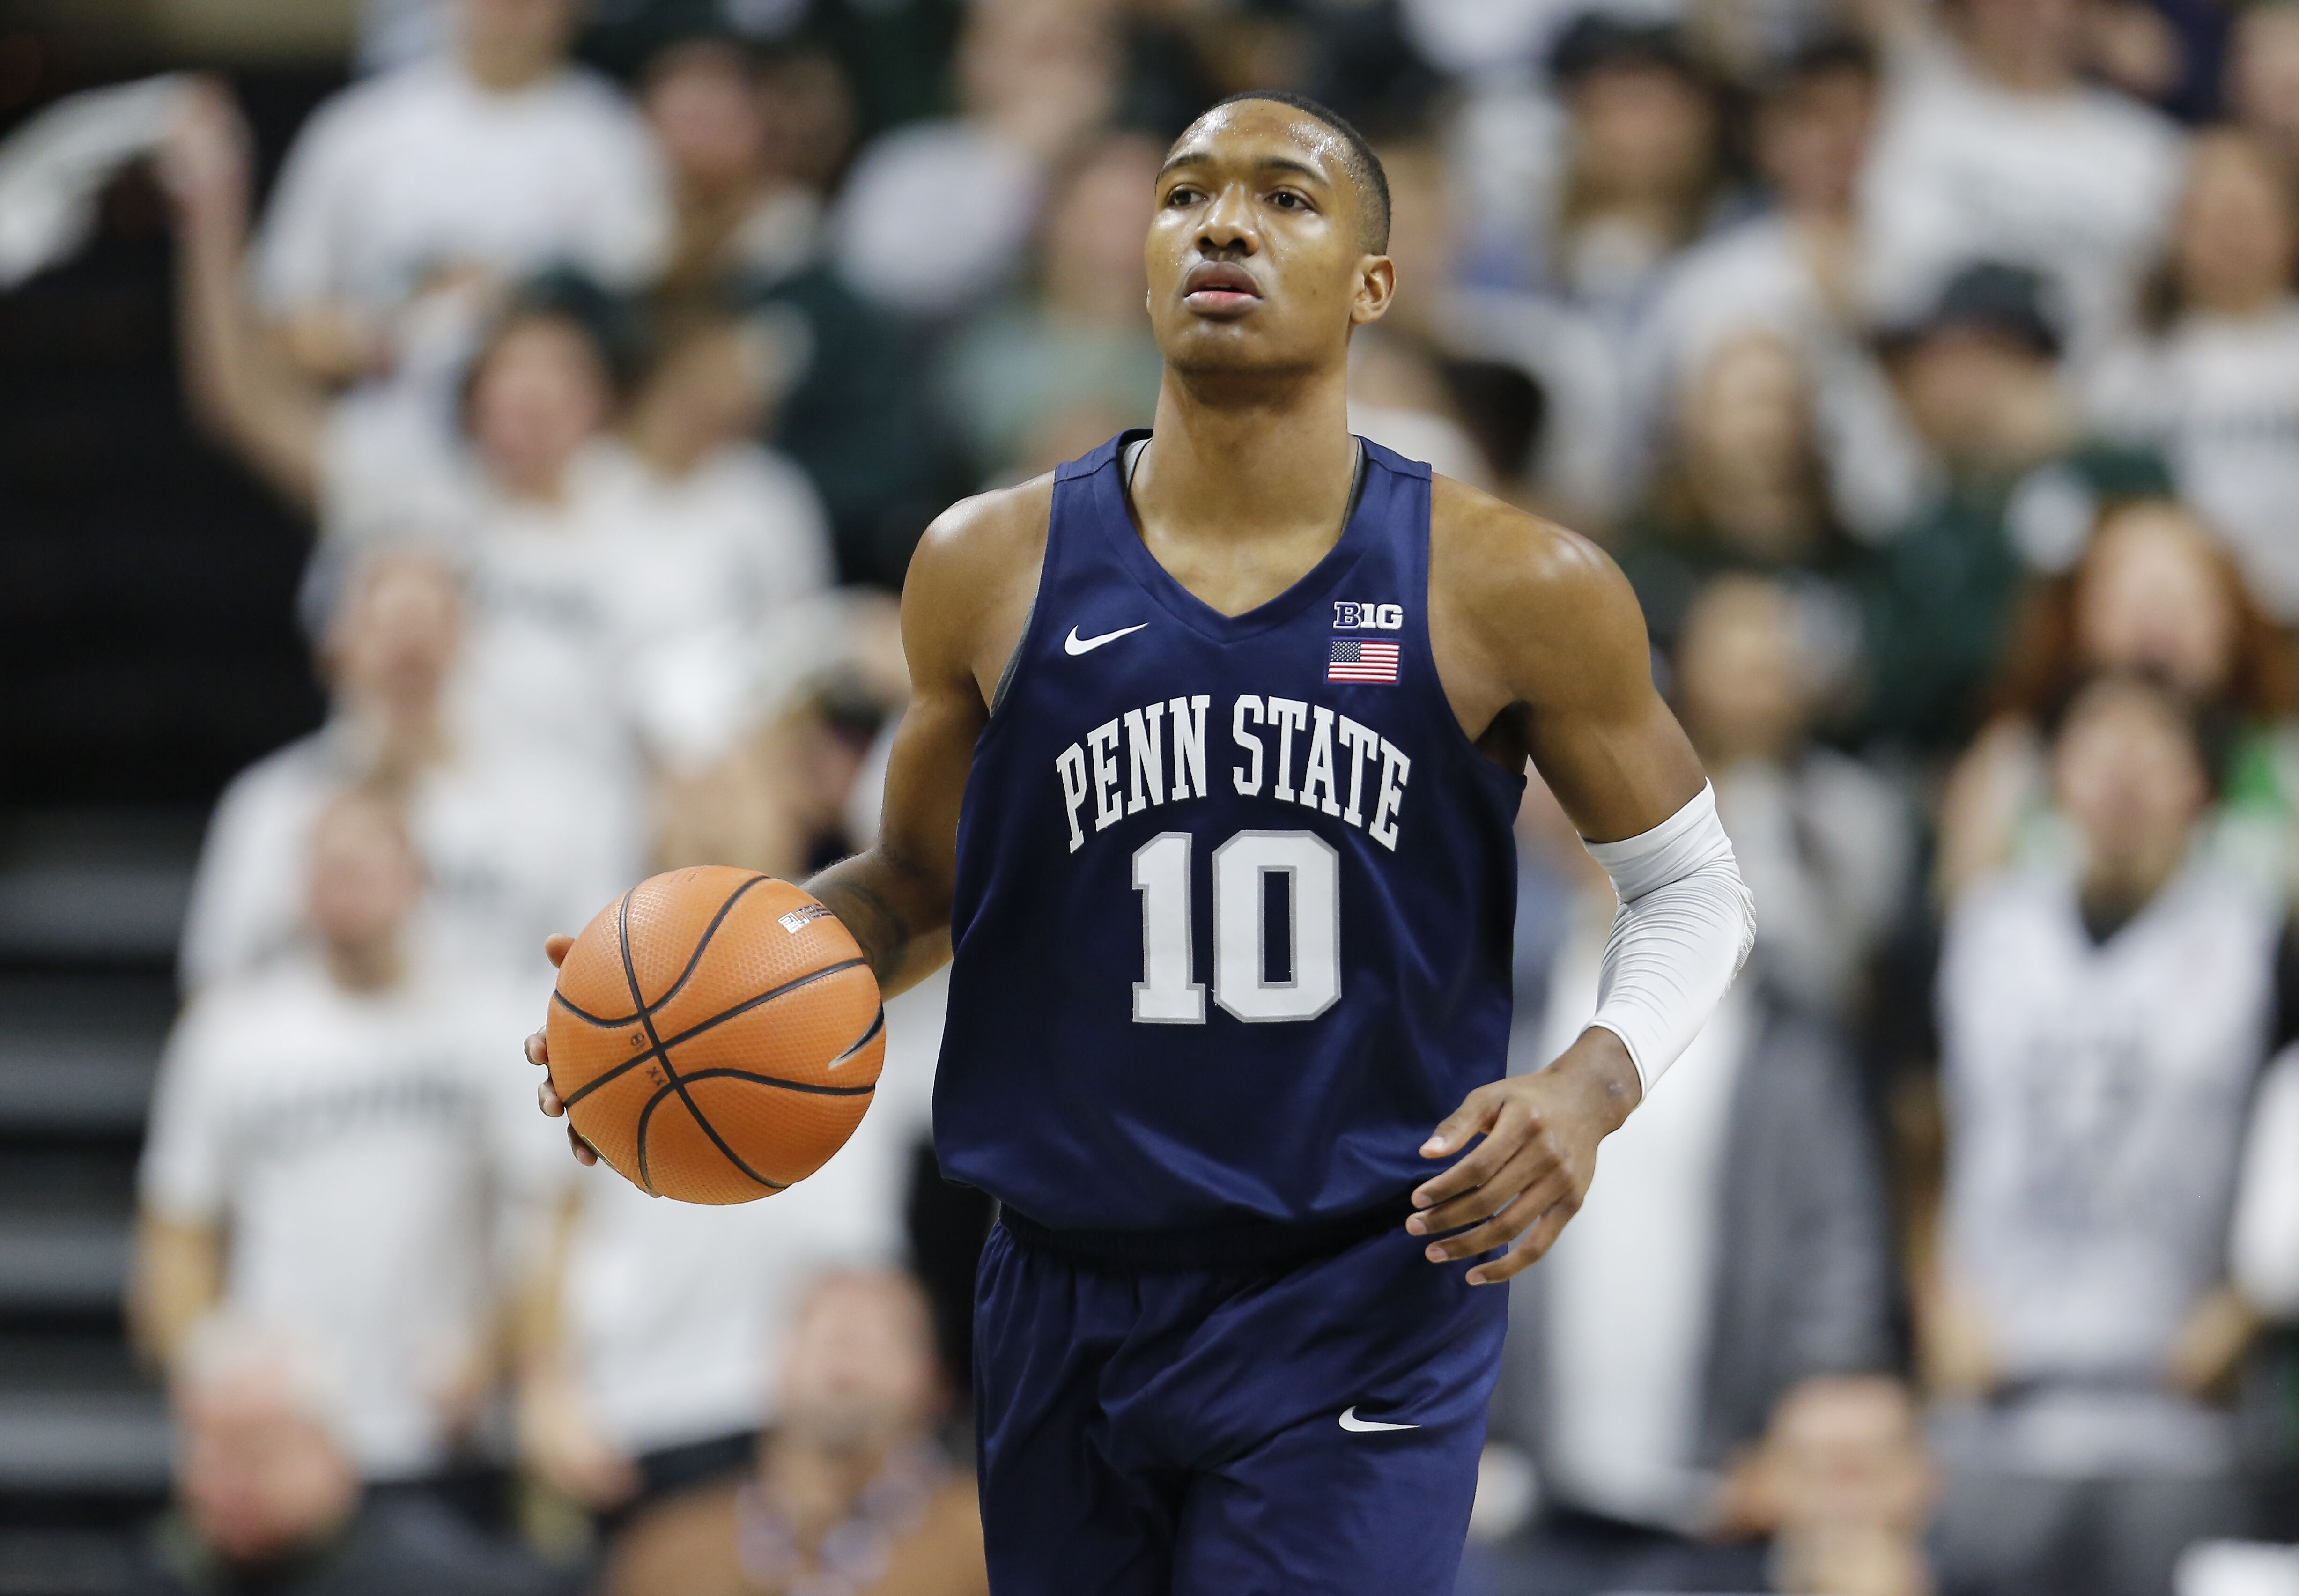 notre dame basketball: get to know penn state